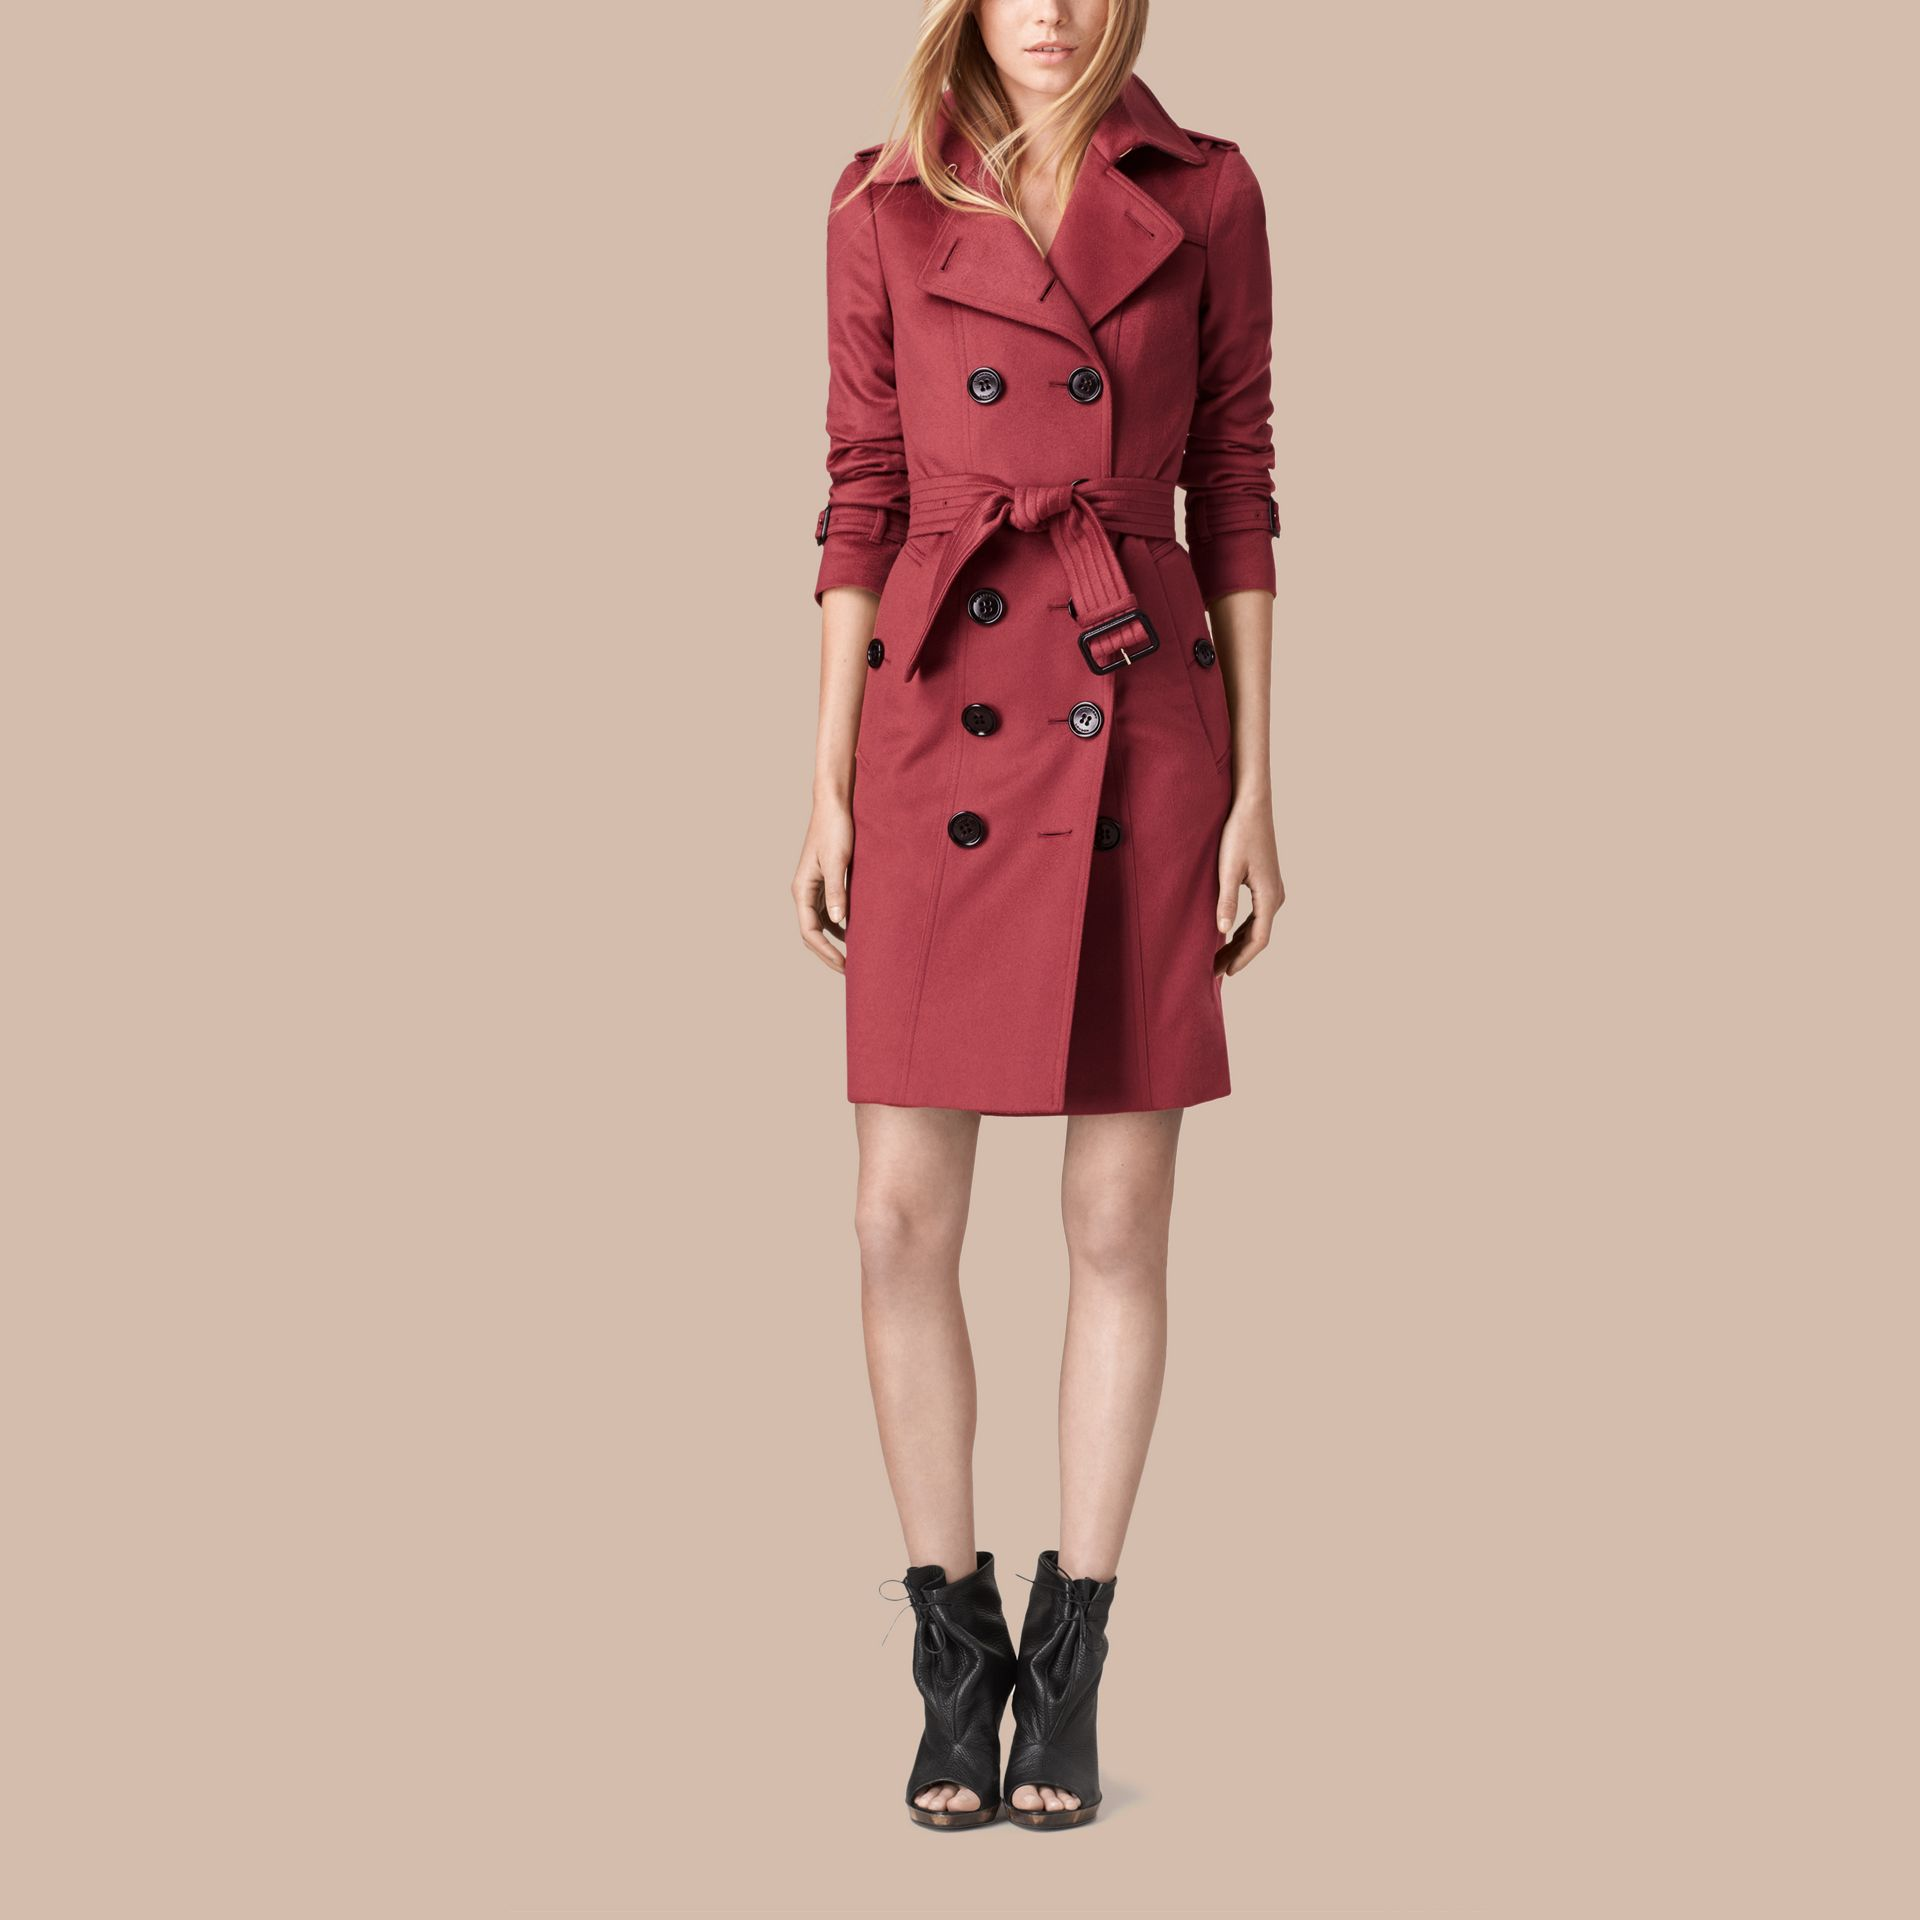 Dusty peony rose Sandringham Fit Cashmere Trench Coat Dusty Peony Rose - gallery image 1